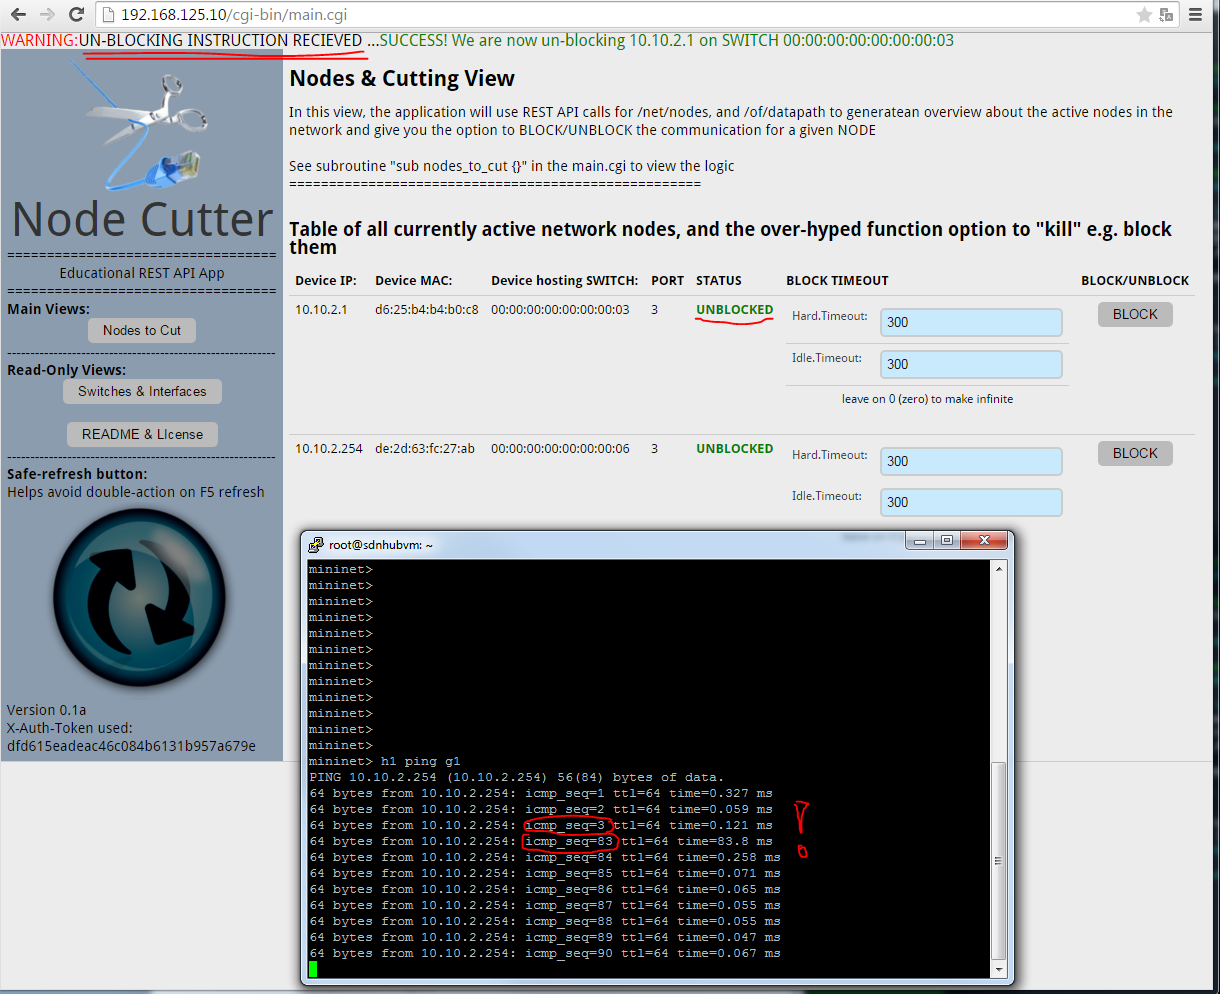 Node Cutter - v0.1 Nodes to Cut view, unblocking node H1 success message and ping recovery after several sequence numbers blocked